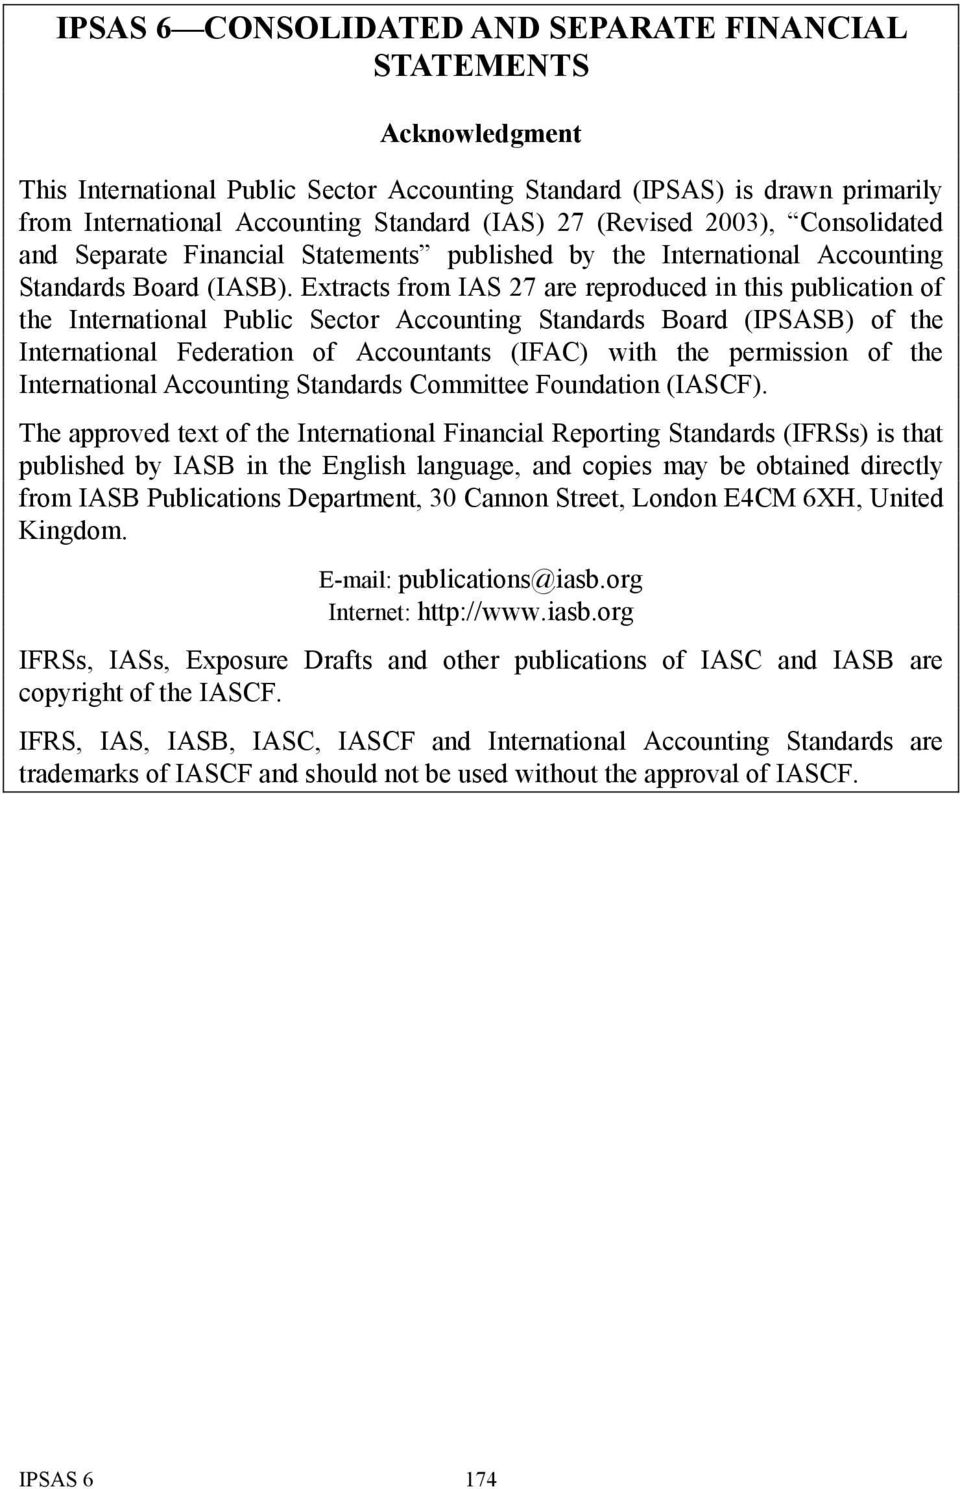 Extracts from IAS 27 are reproduced in this publication of the International Public Sector Accounting Standards Board (IPSASB) of the International Federation of Accountants (IFAC) with the